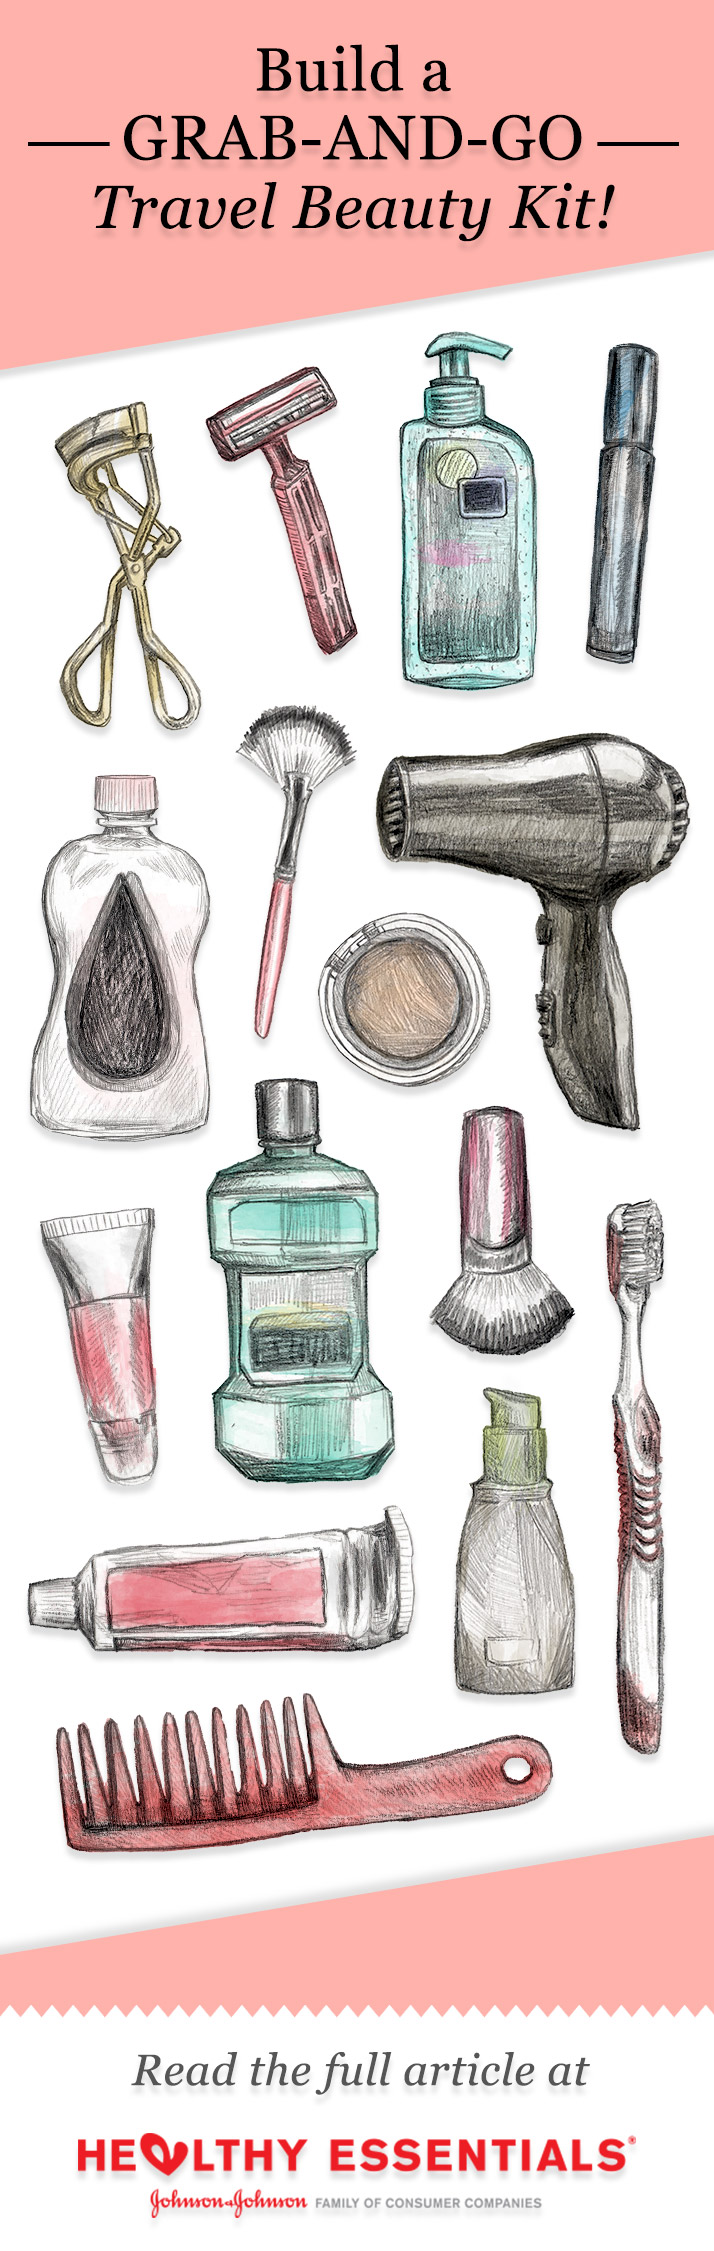 Hand Drawn, Digitally Colored. Healthy Essentials Pinterest Post